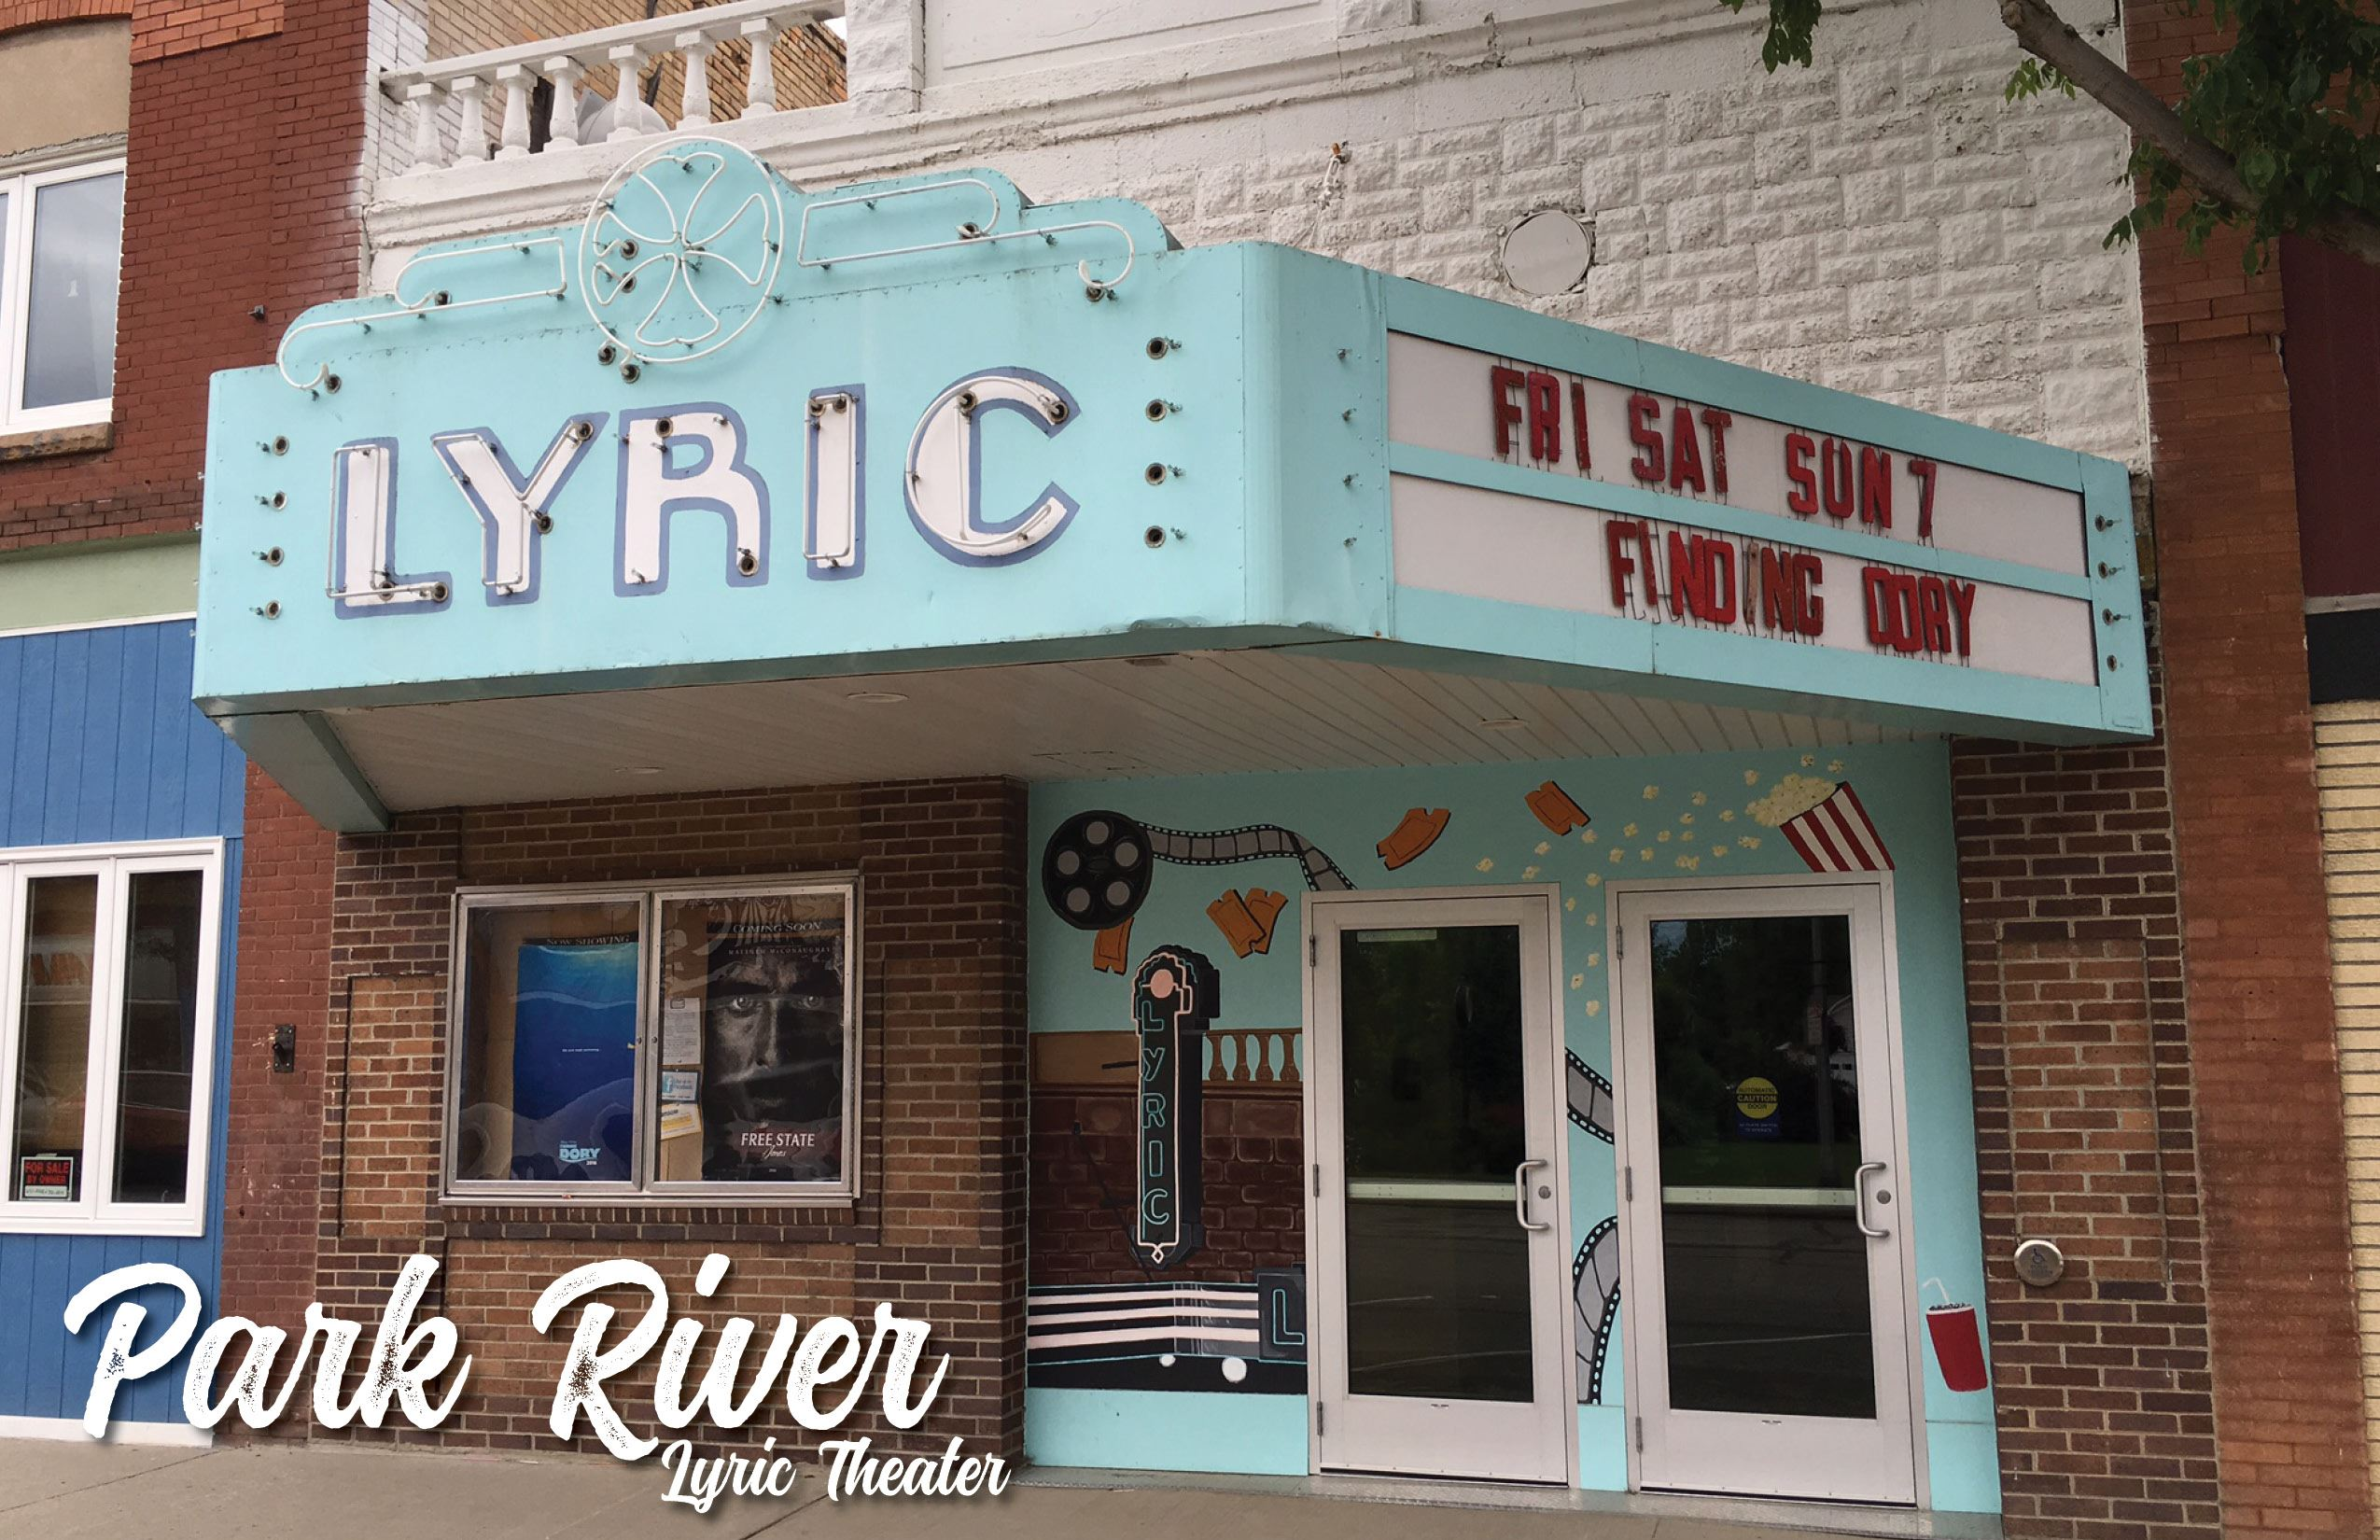 Park River Lyric Theater